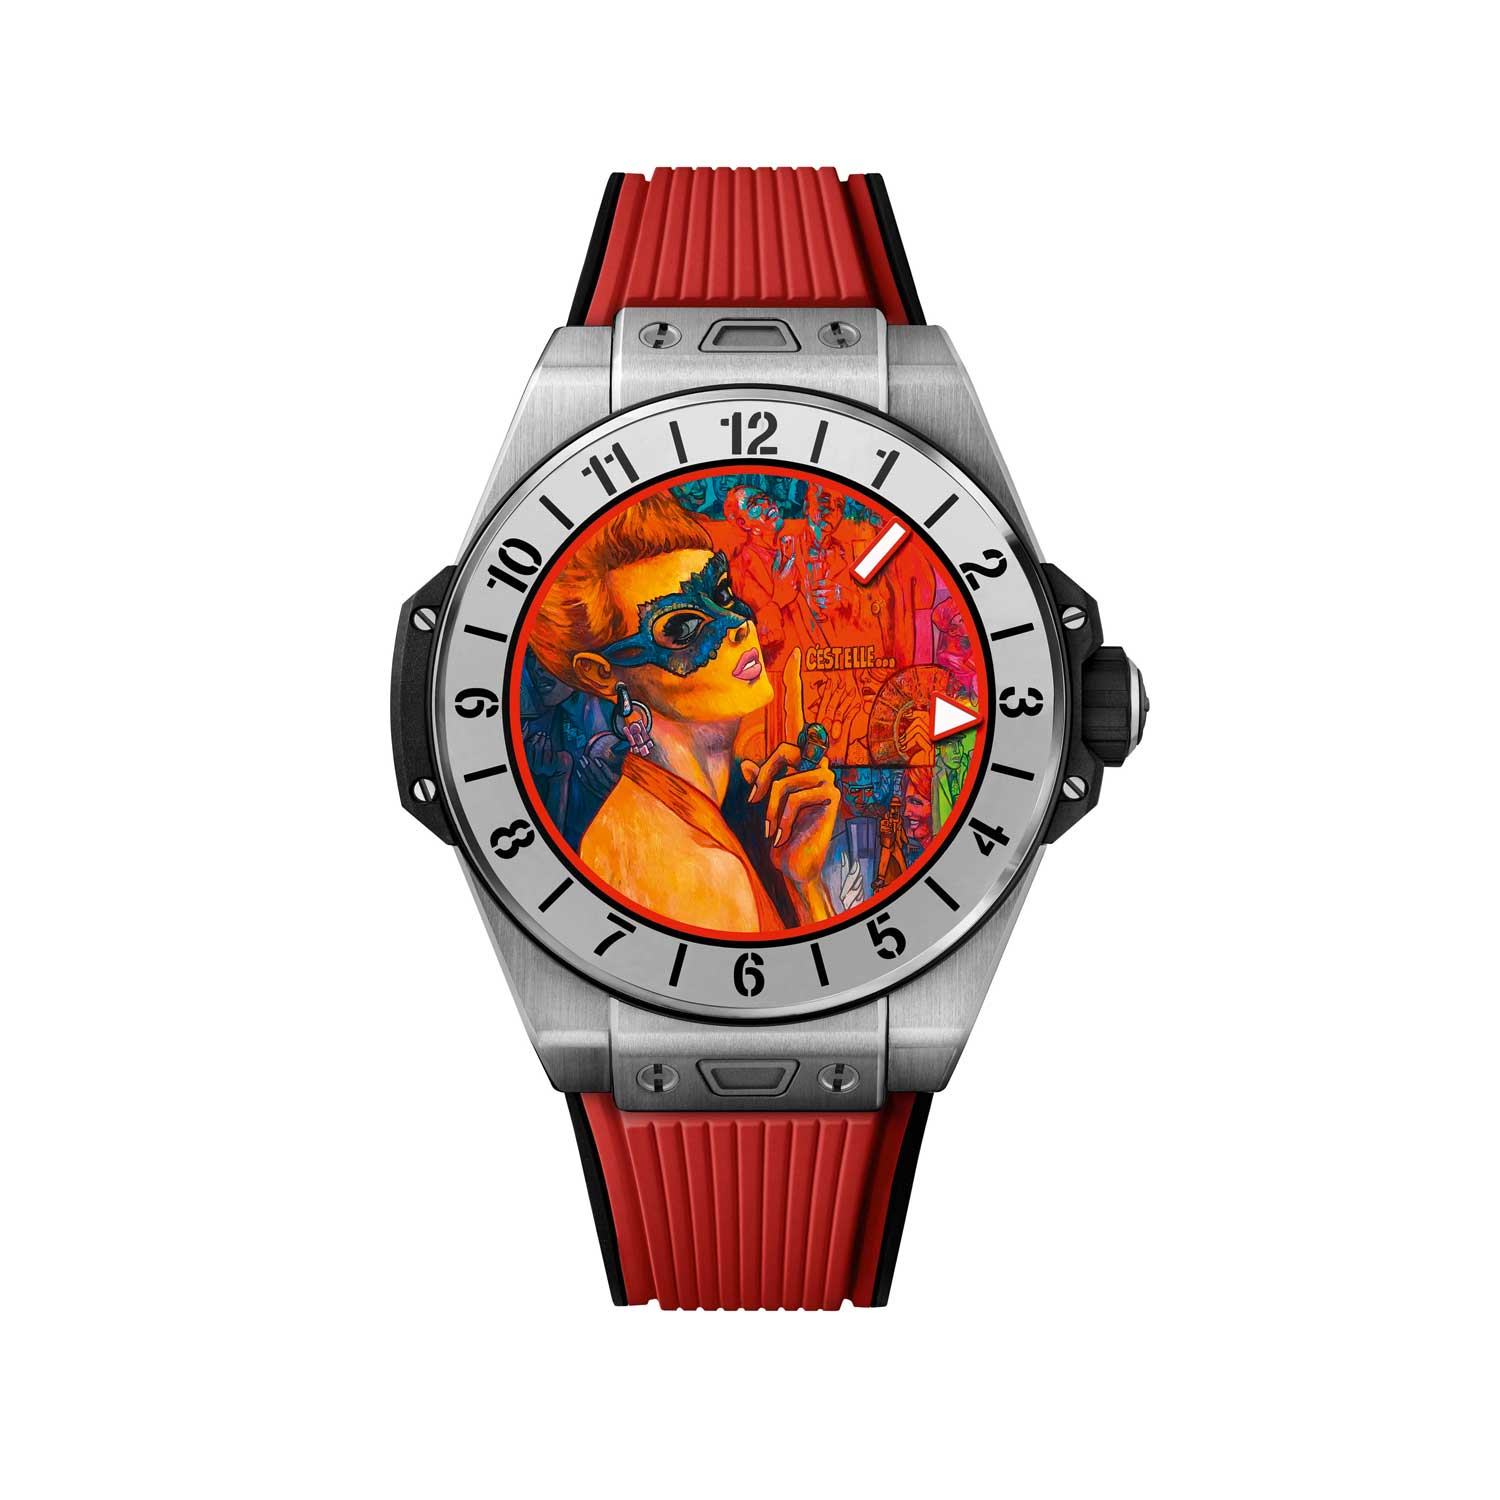 Magic Red dial designed by Marc Ferrero for the Big Bang E